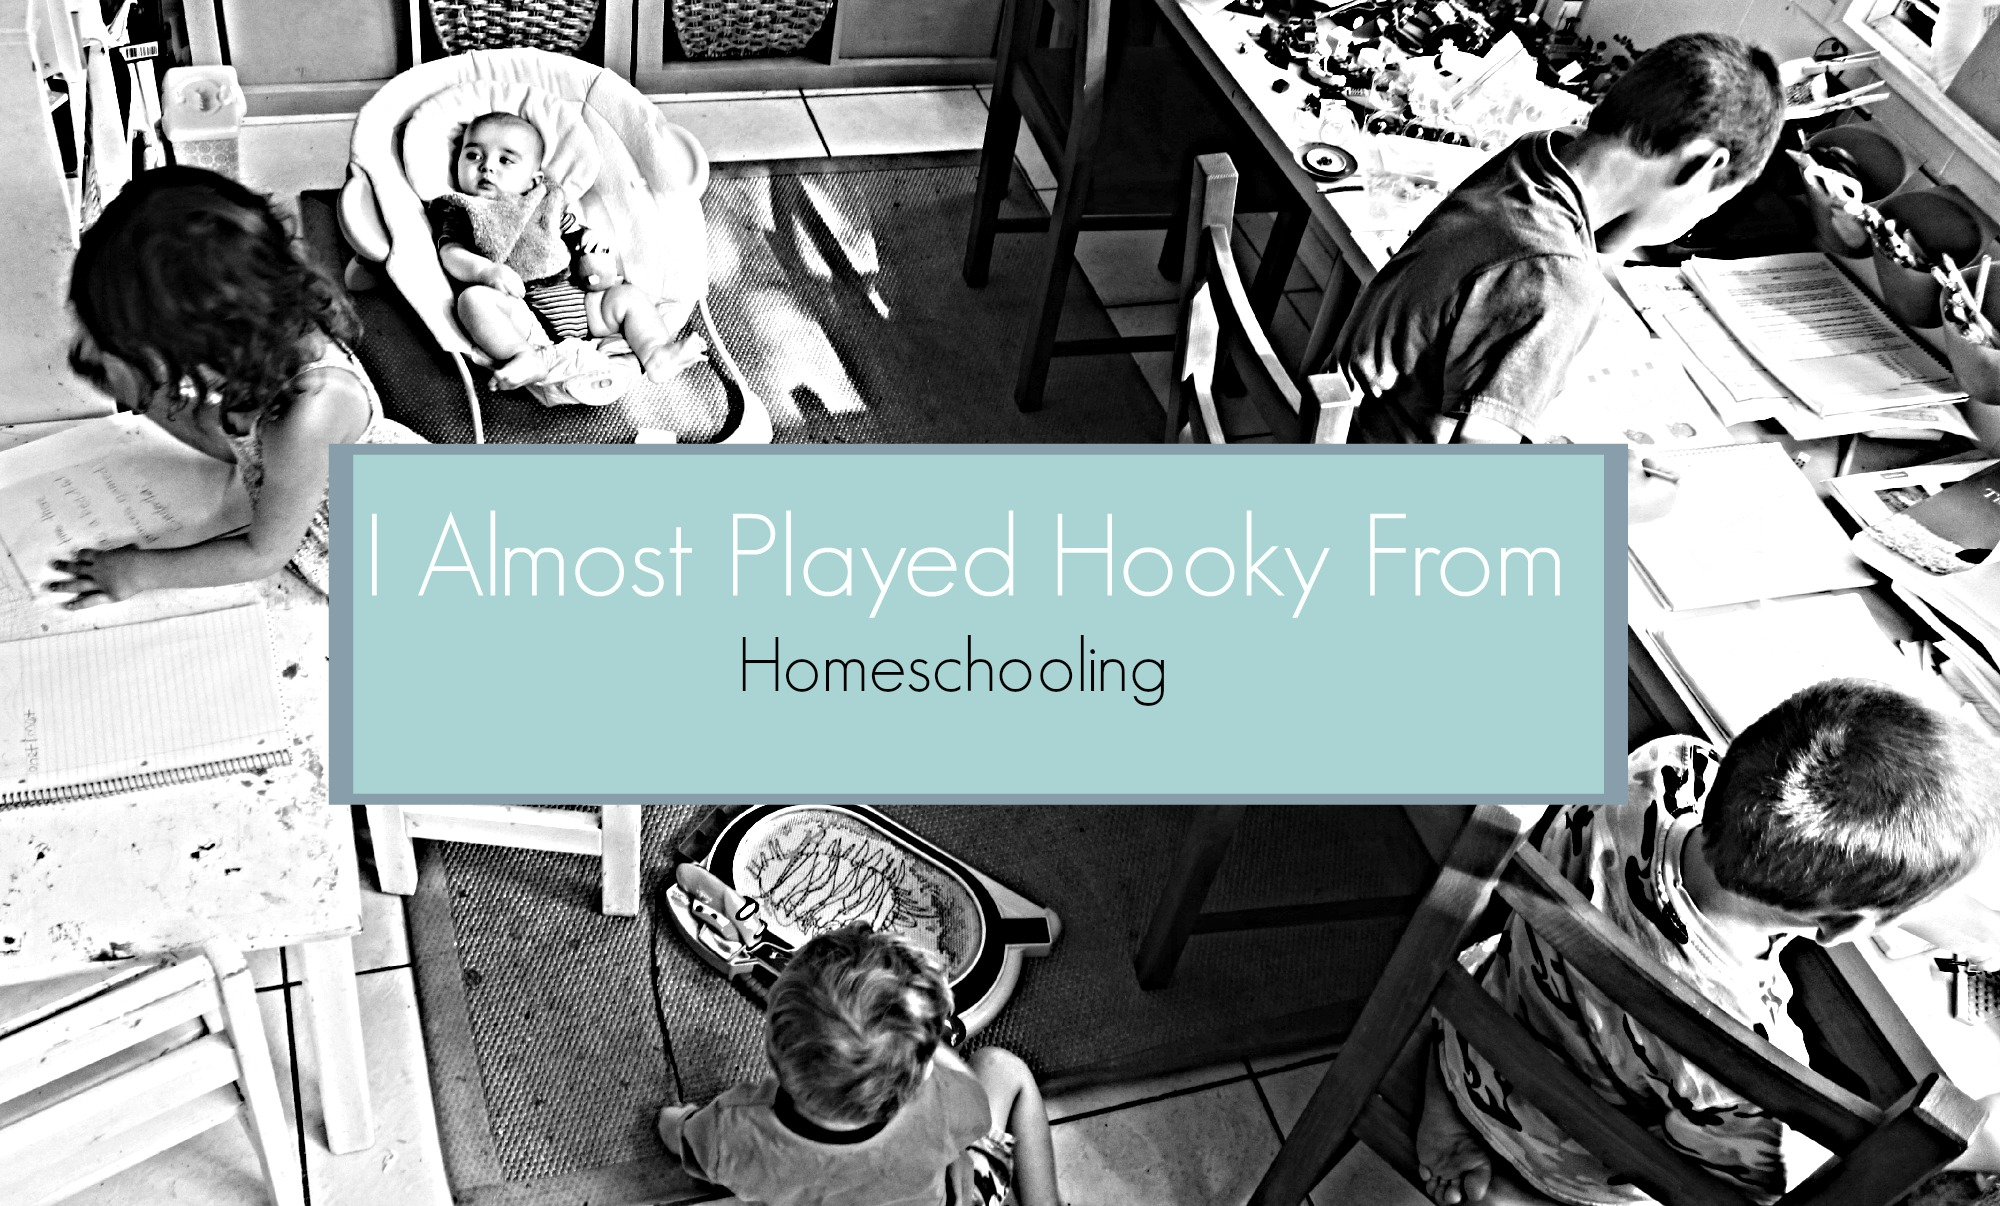 I Almost Played Hookey From Homeschooling